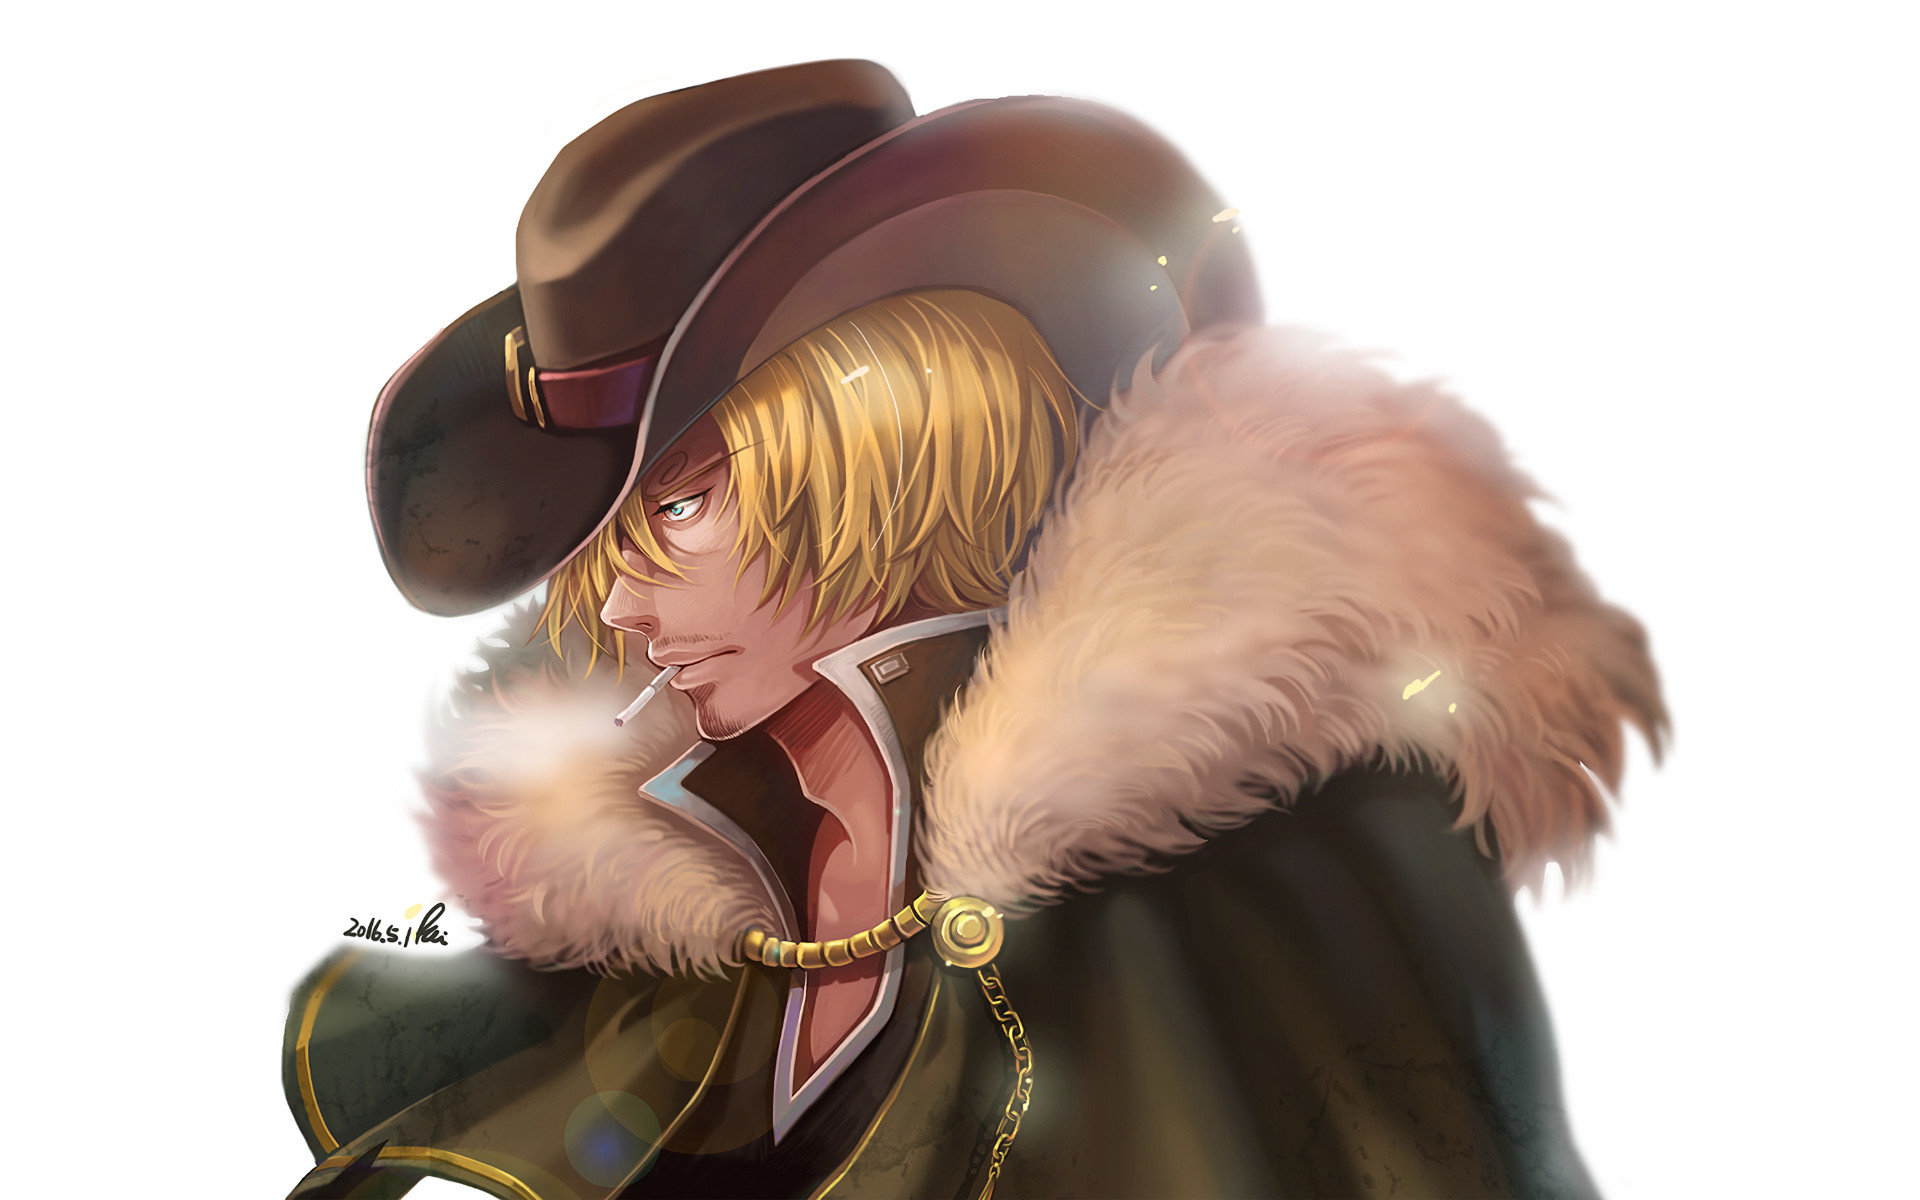 Awesome Sanji (One Piece) free wallpaper ID:314391 for hd 1920x1200 desktop